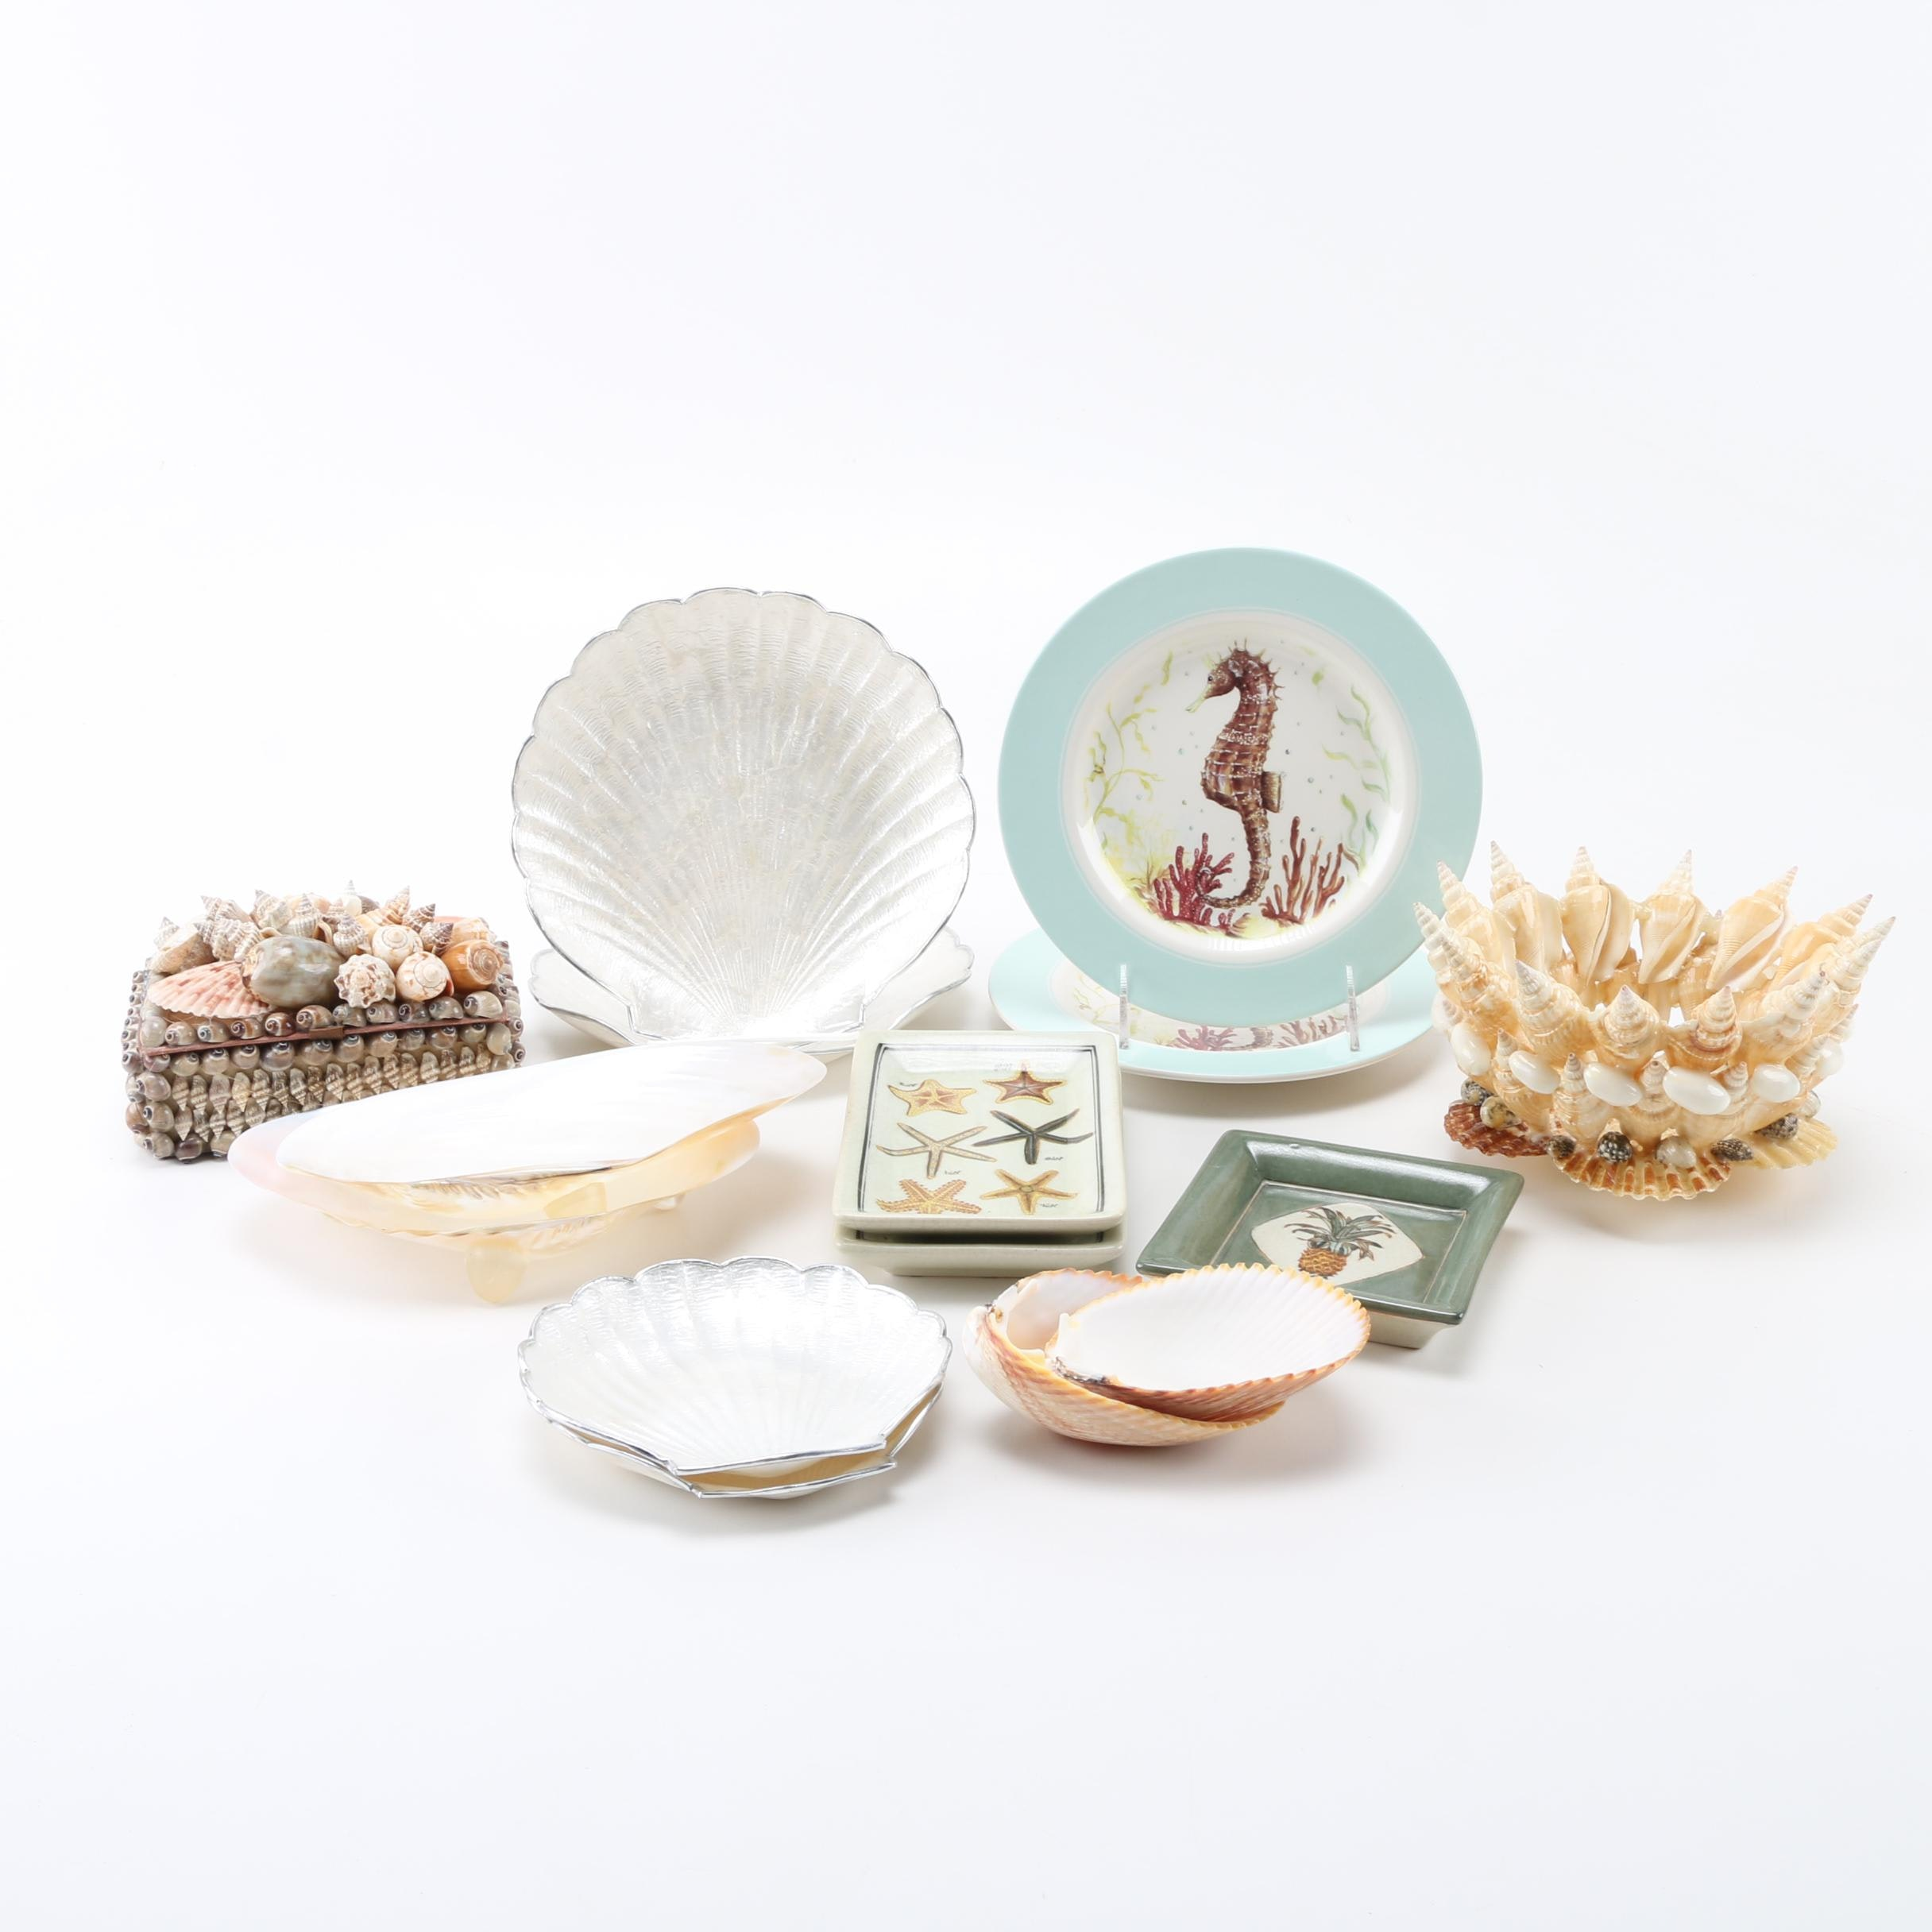 Shell Themed Decor Featuring Seahorse Plates by Dennis East